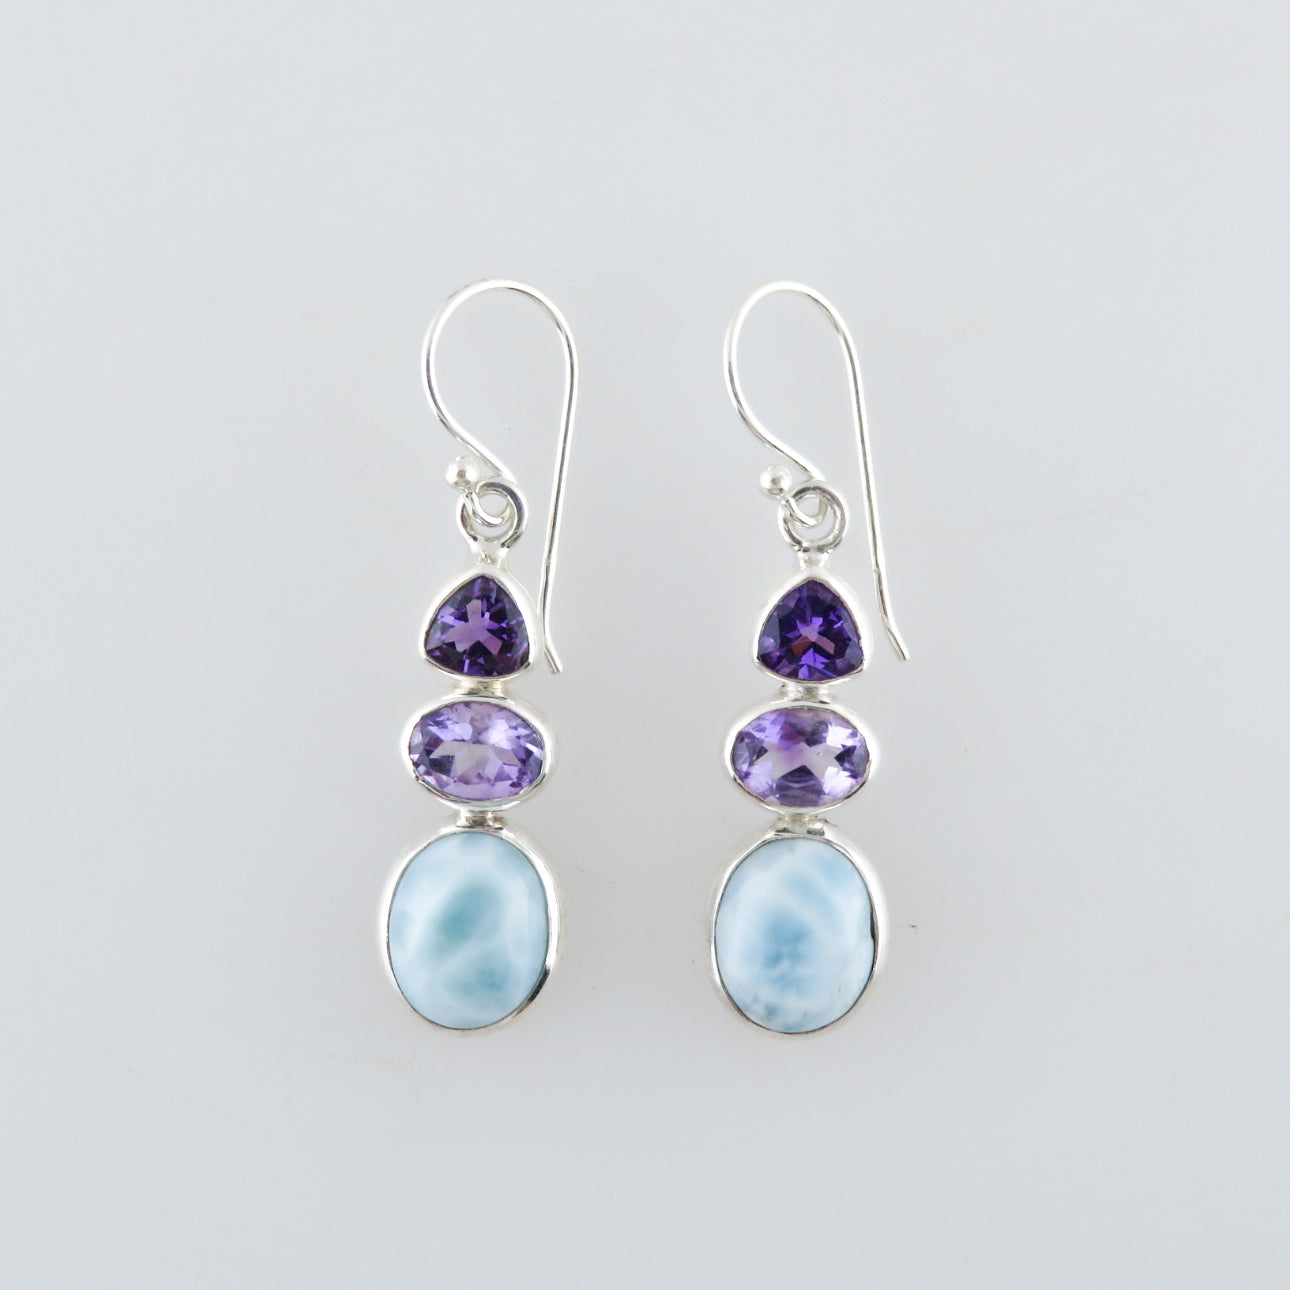 Larimar Stone Sterling Silver Earrings with Amethyst